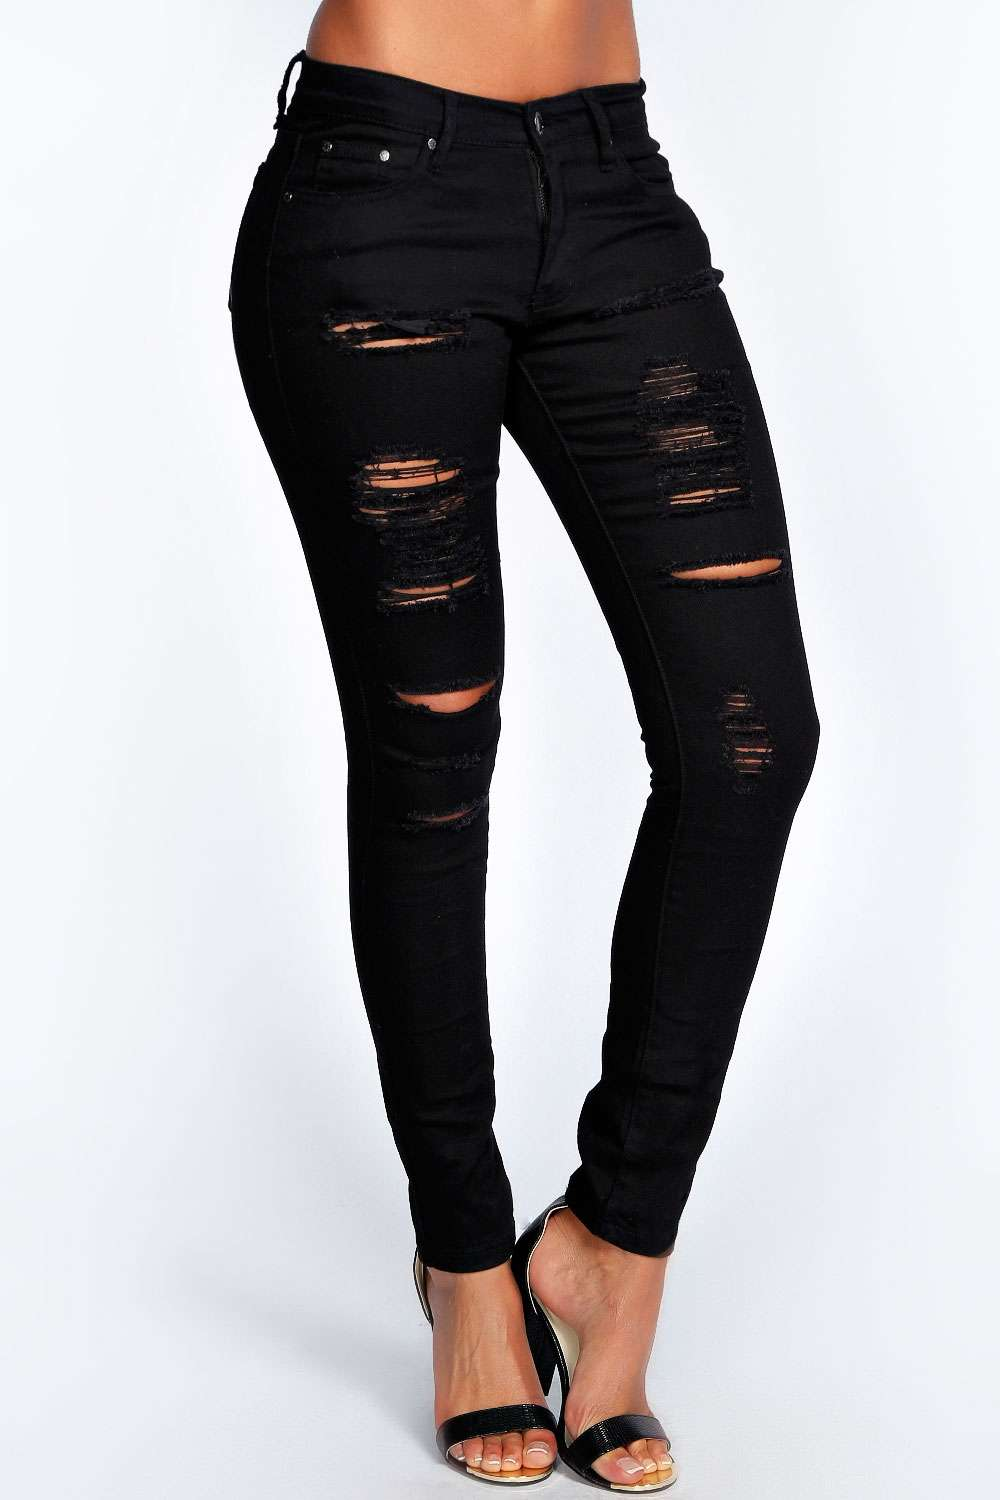 ripped distressed black skinny jeans - Jean Yu Beauty